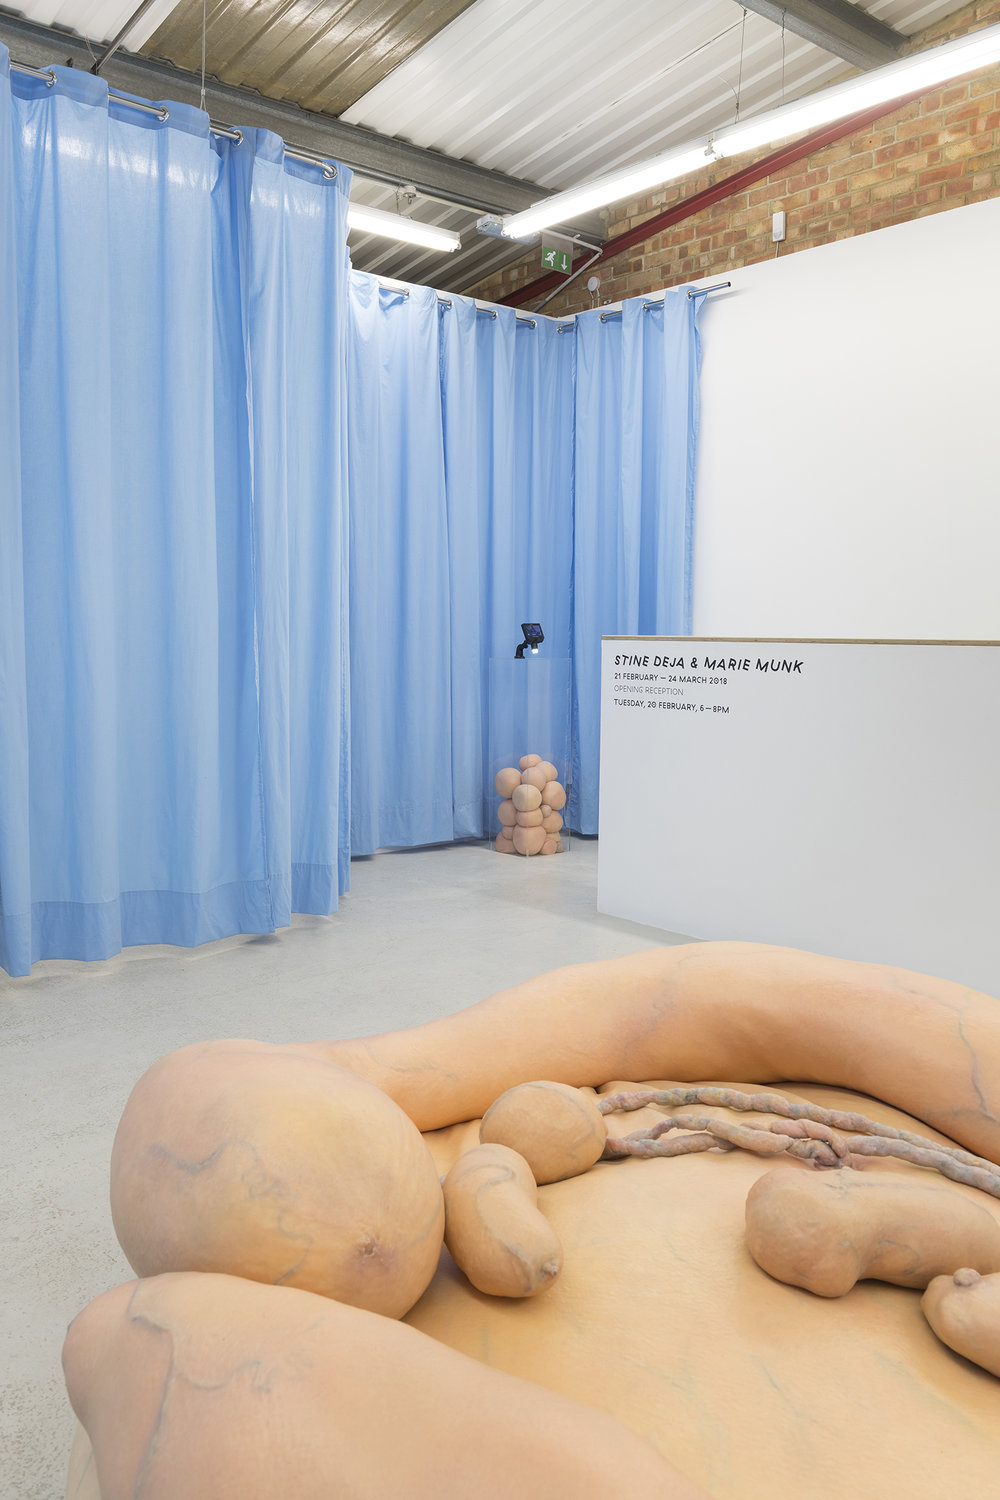 Stine Deja & Marie Munk, Synthetic Seduction. Installation view, Annka Kultys, 2018.